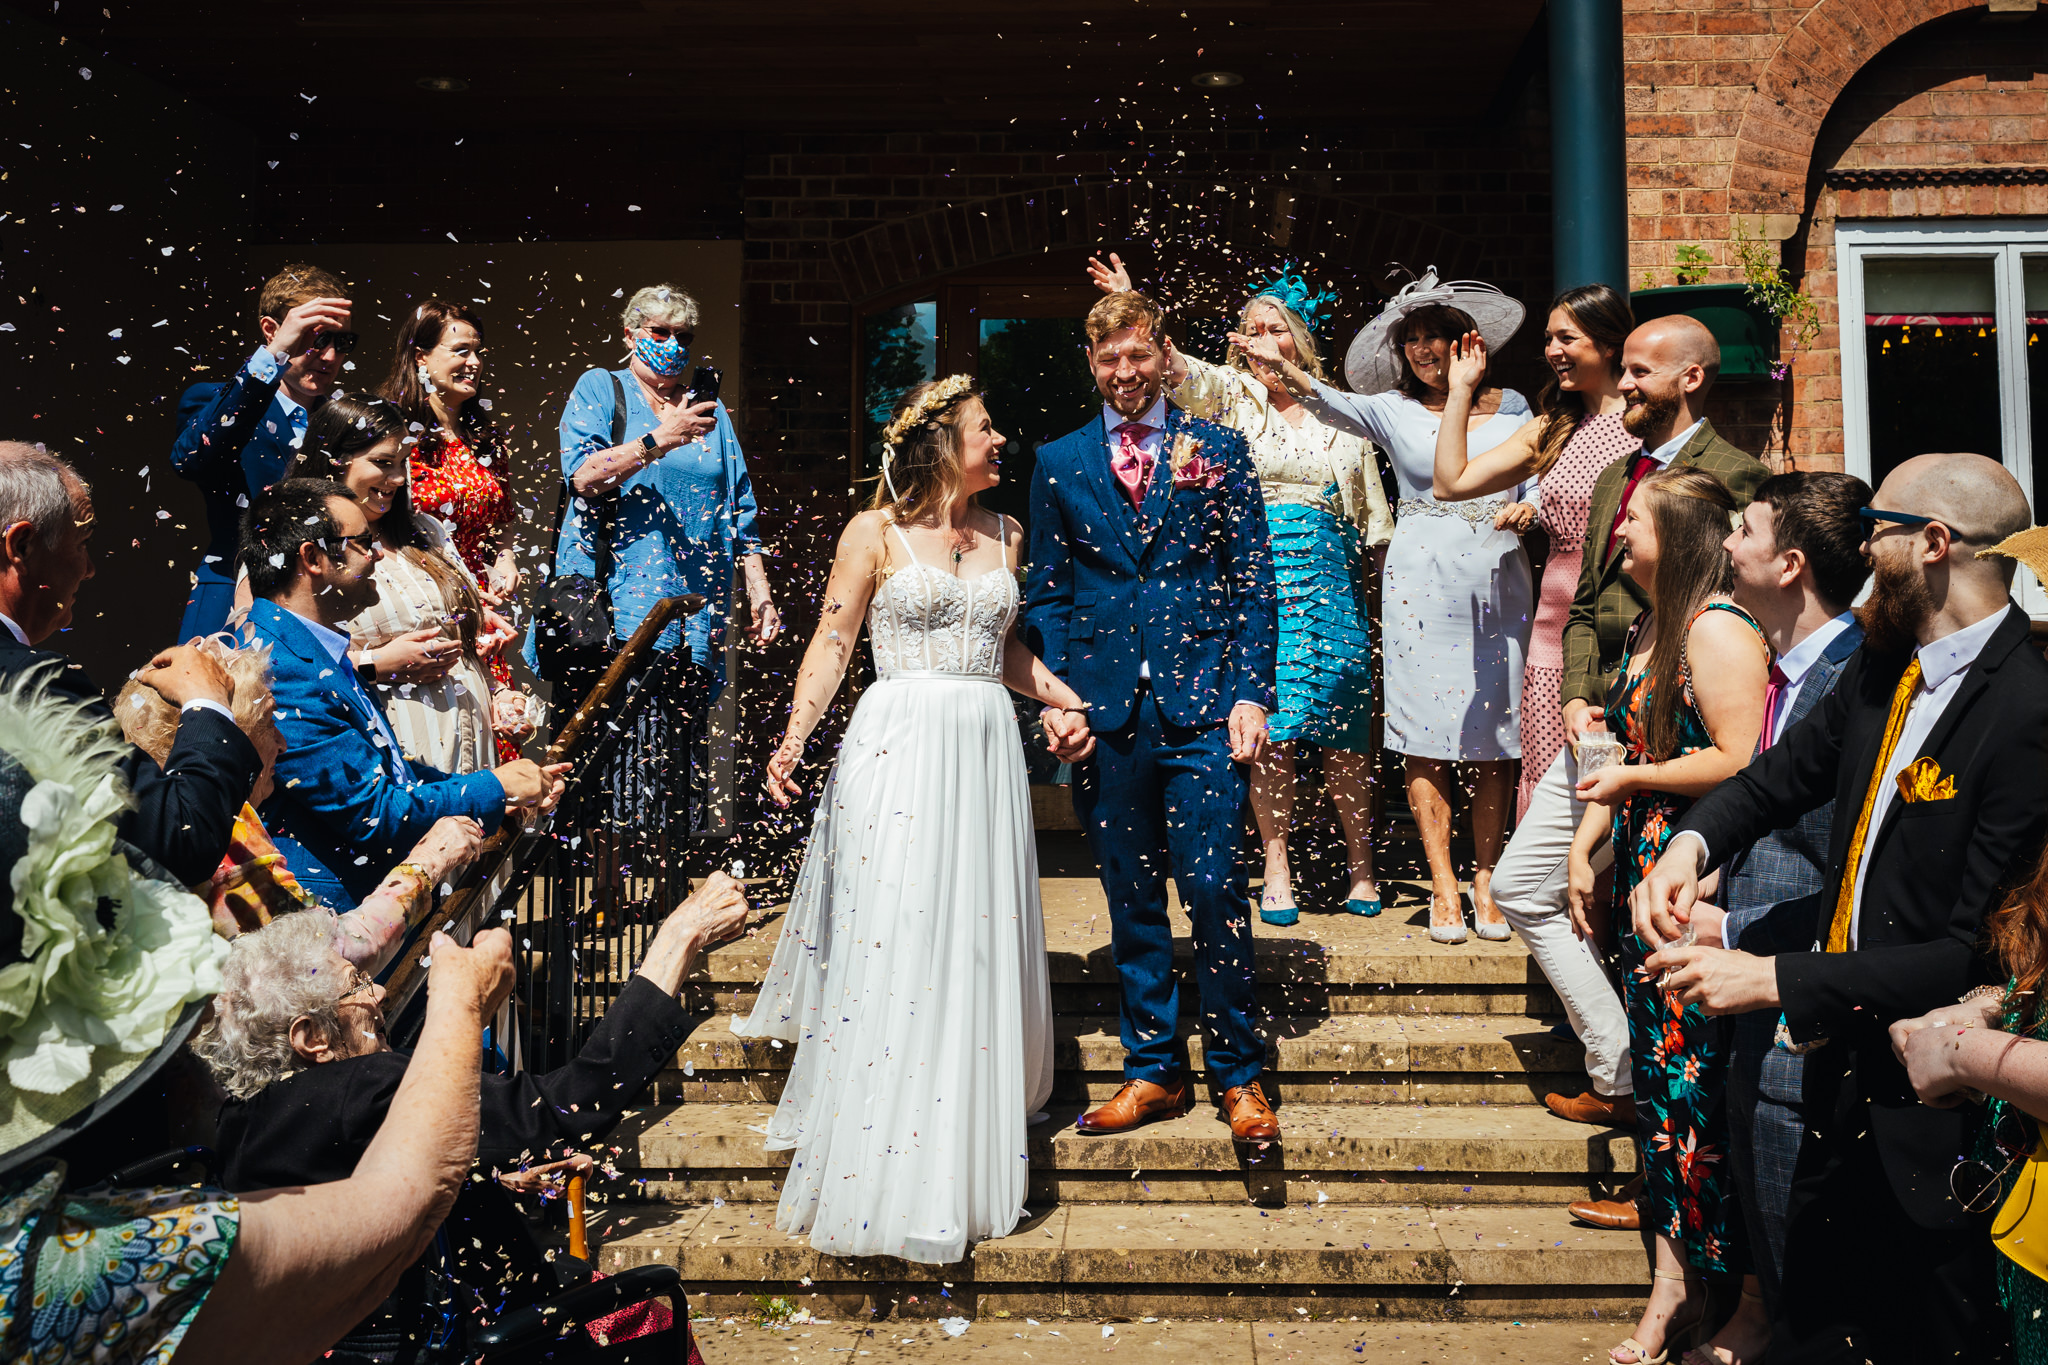 Fun Wedding Photography - Couple during confetti shoot at venue bride is in a beautiful dress groom is dress in blue